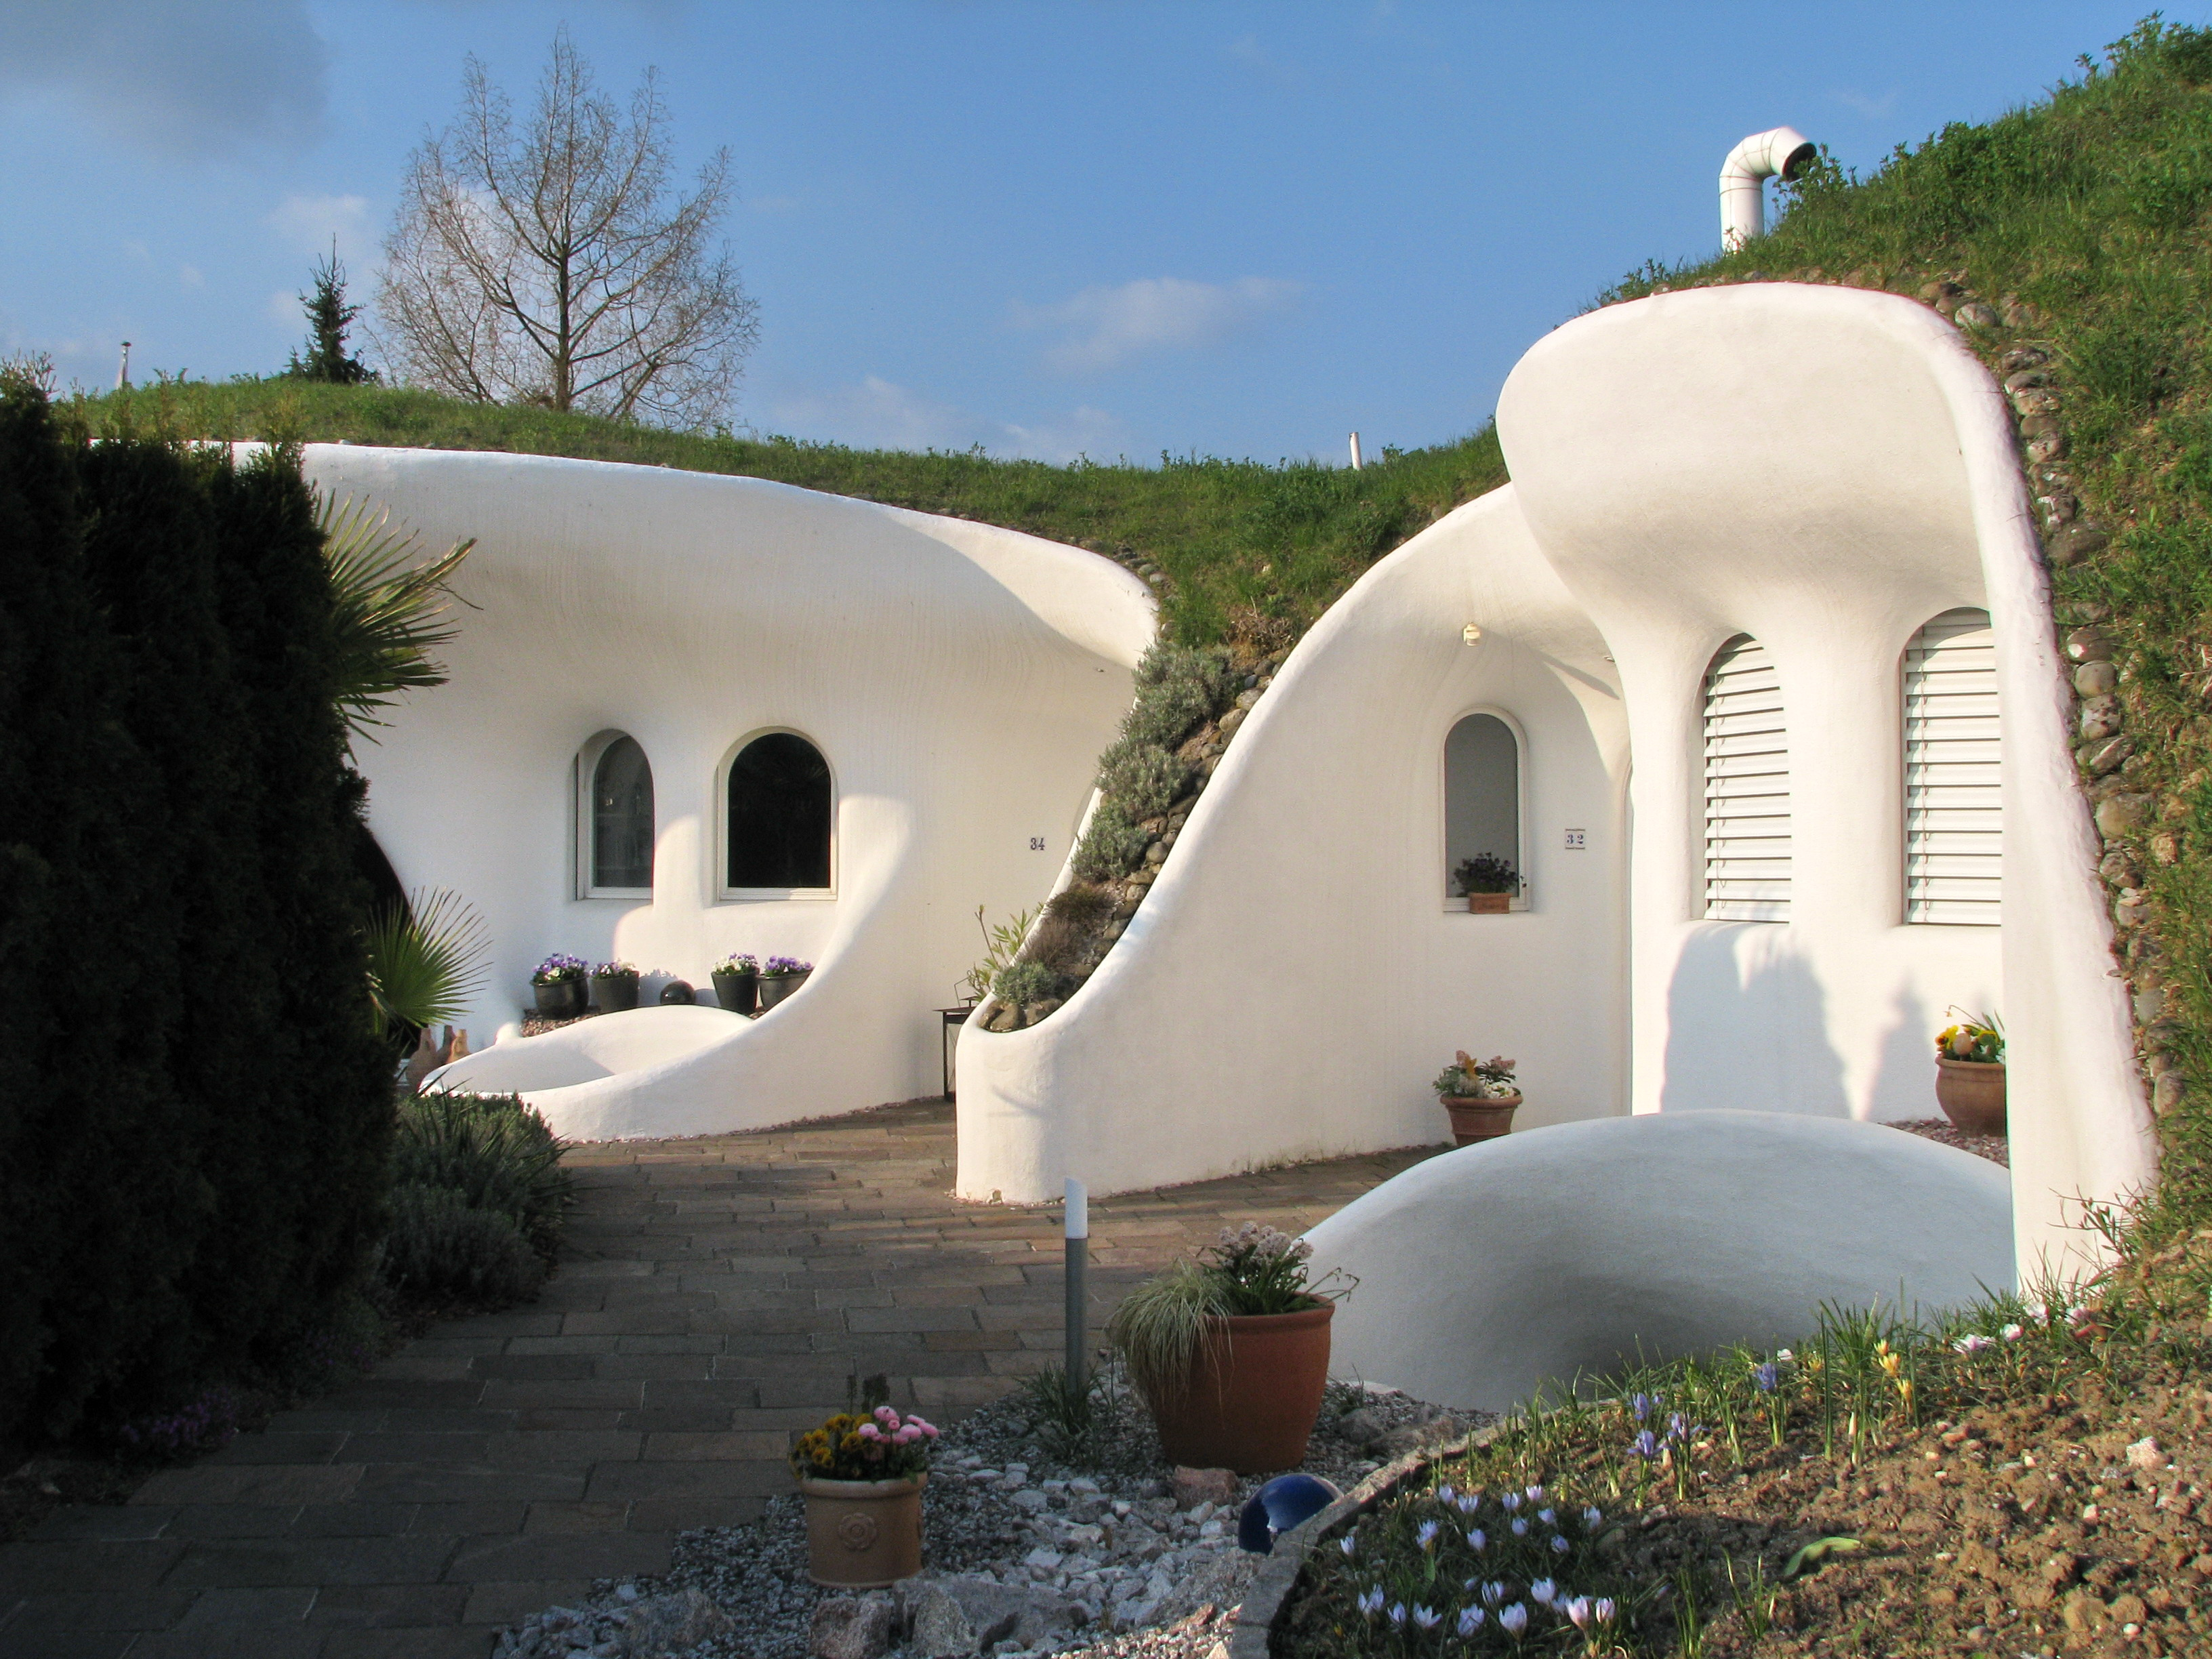 Ba ka tasar m peter vetsch 39 in toprak evleri - The cob house the beauty of simplicity ...